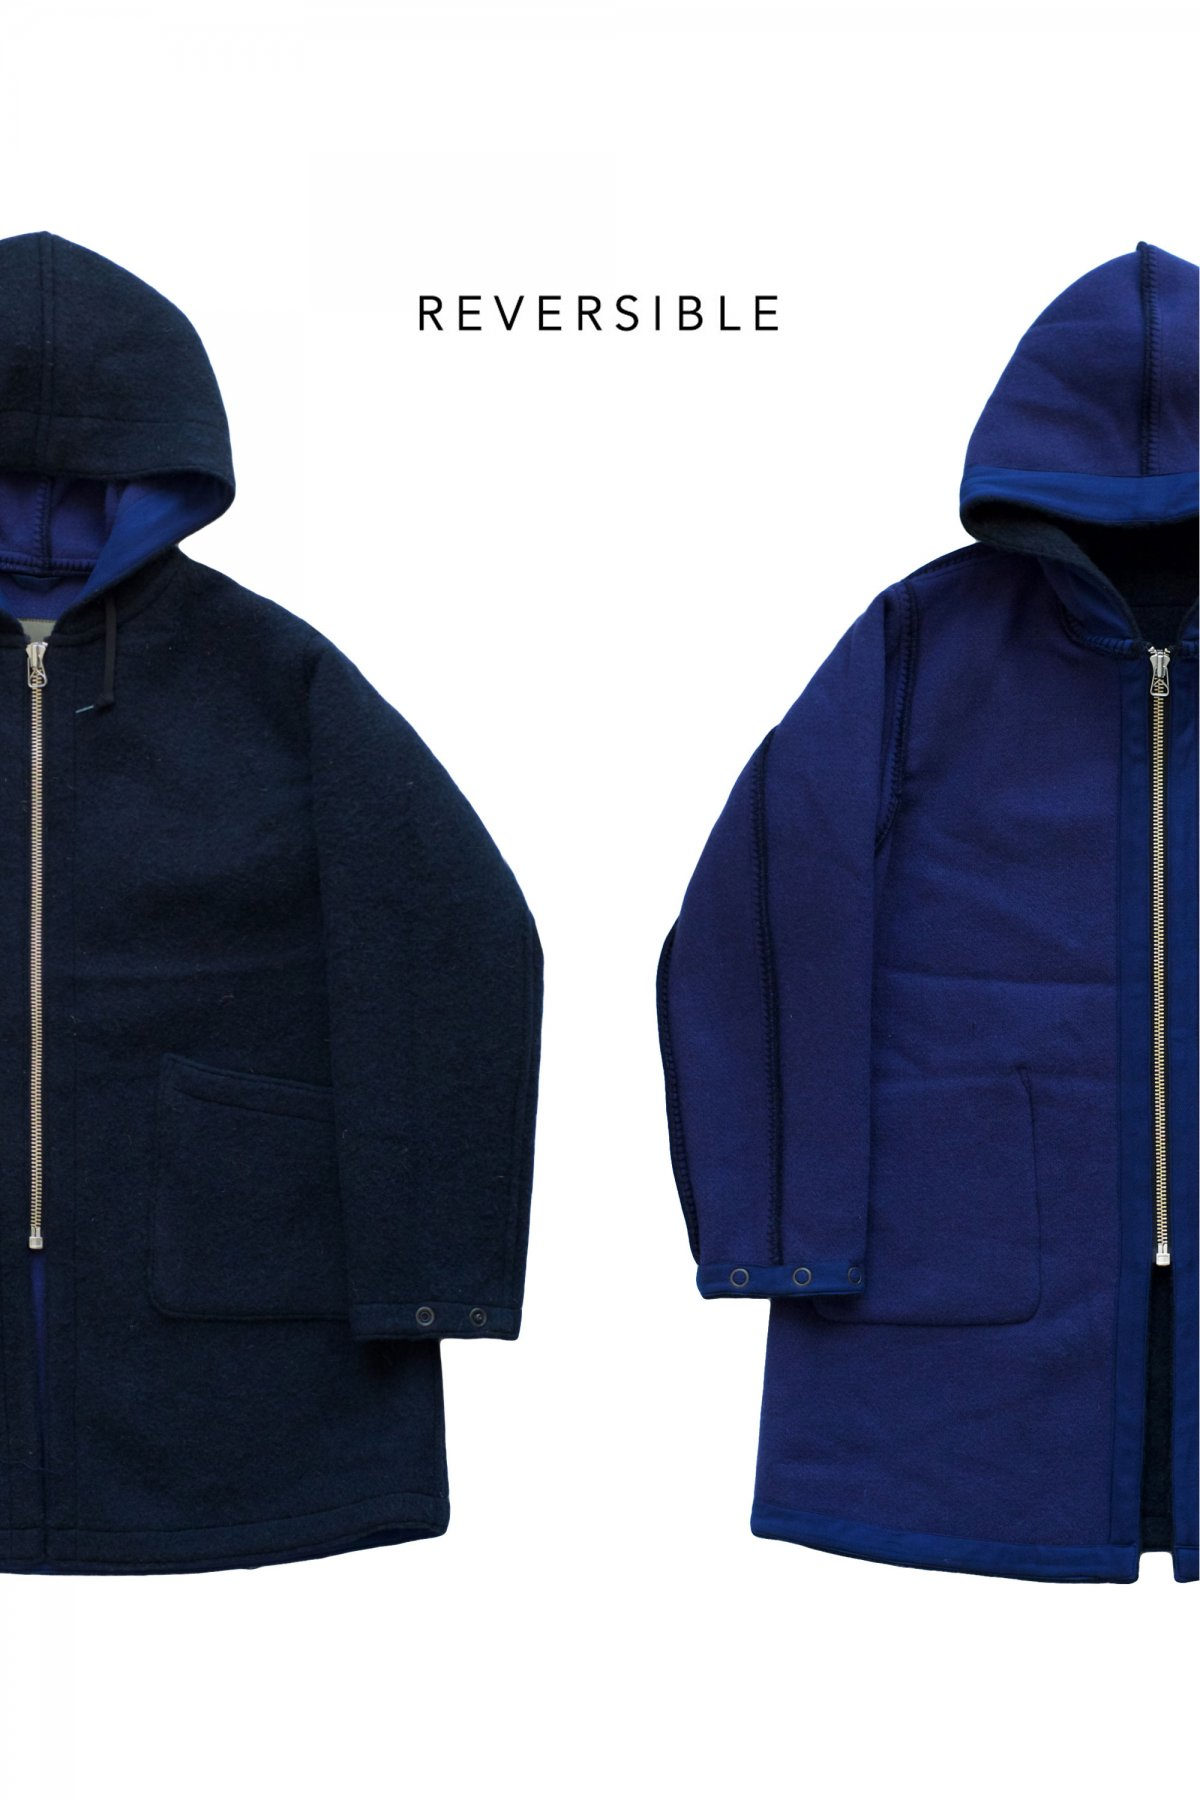 Nigel Cabourn - REVERSIBLE WARM UP COAT DARK NAVY - PRICE  74,800 tax-in